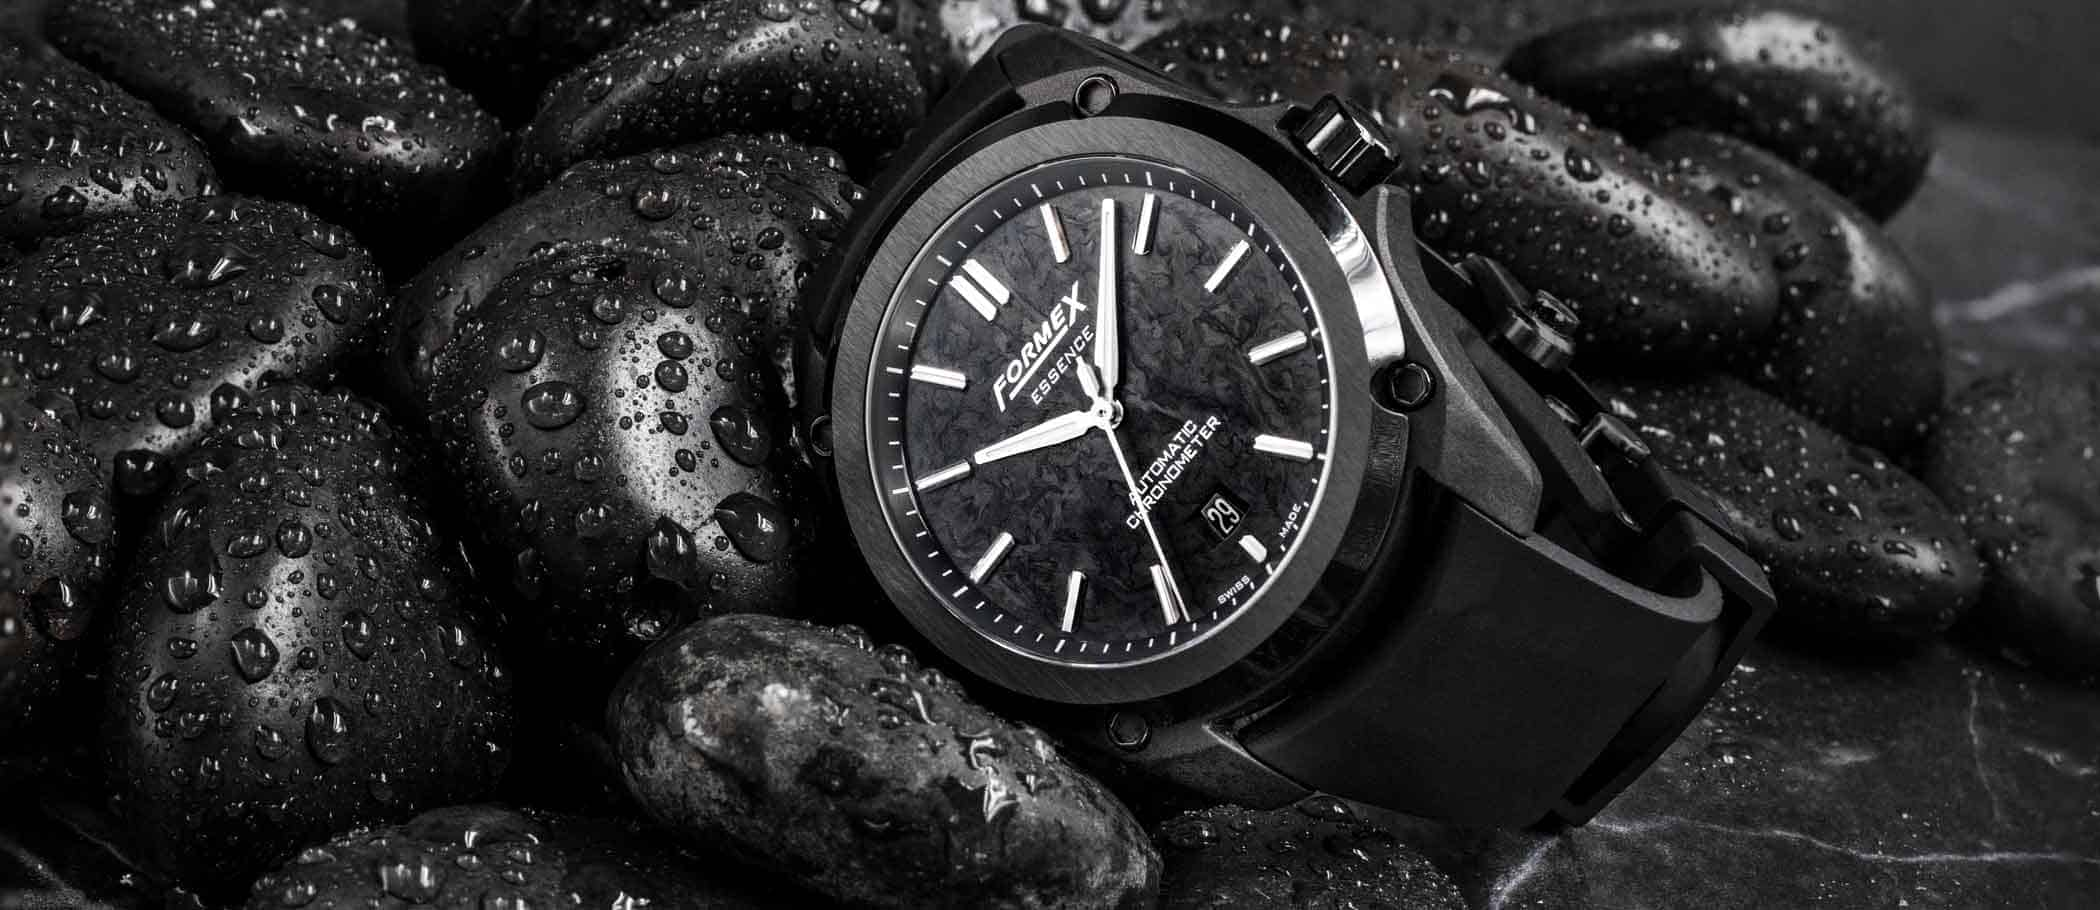 Formex-Essence-LEGGERA-Automatic-Chronometer-FORGED-CARBON-Styled-1